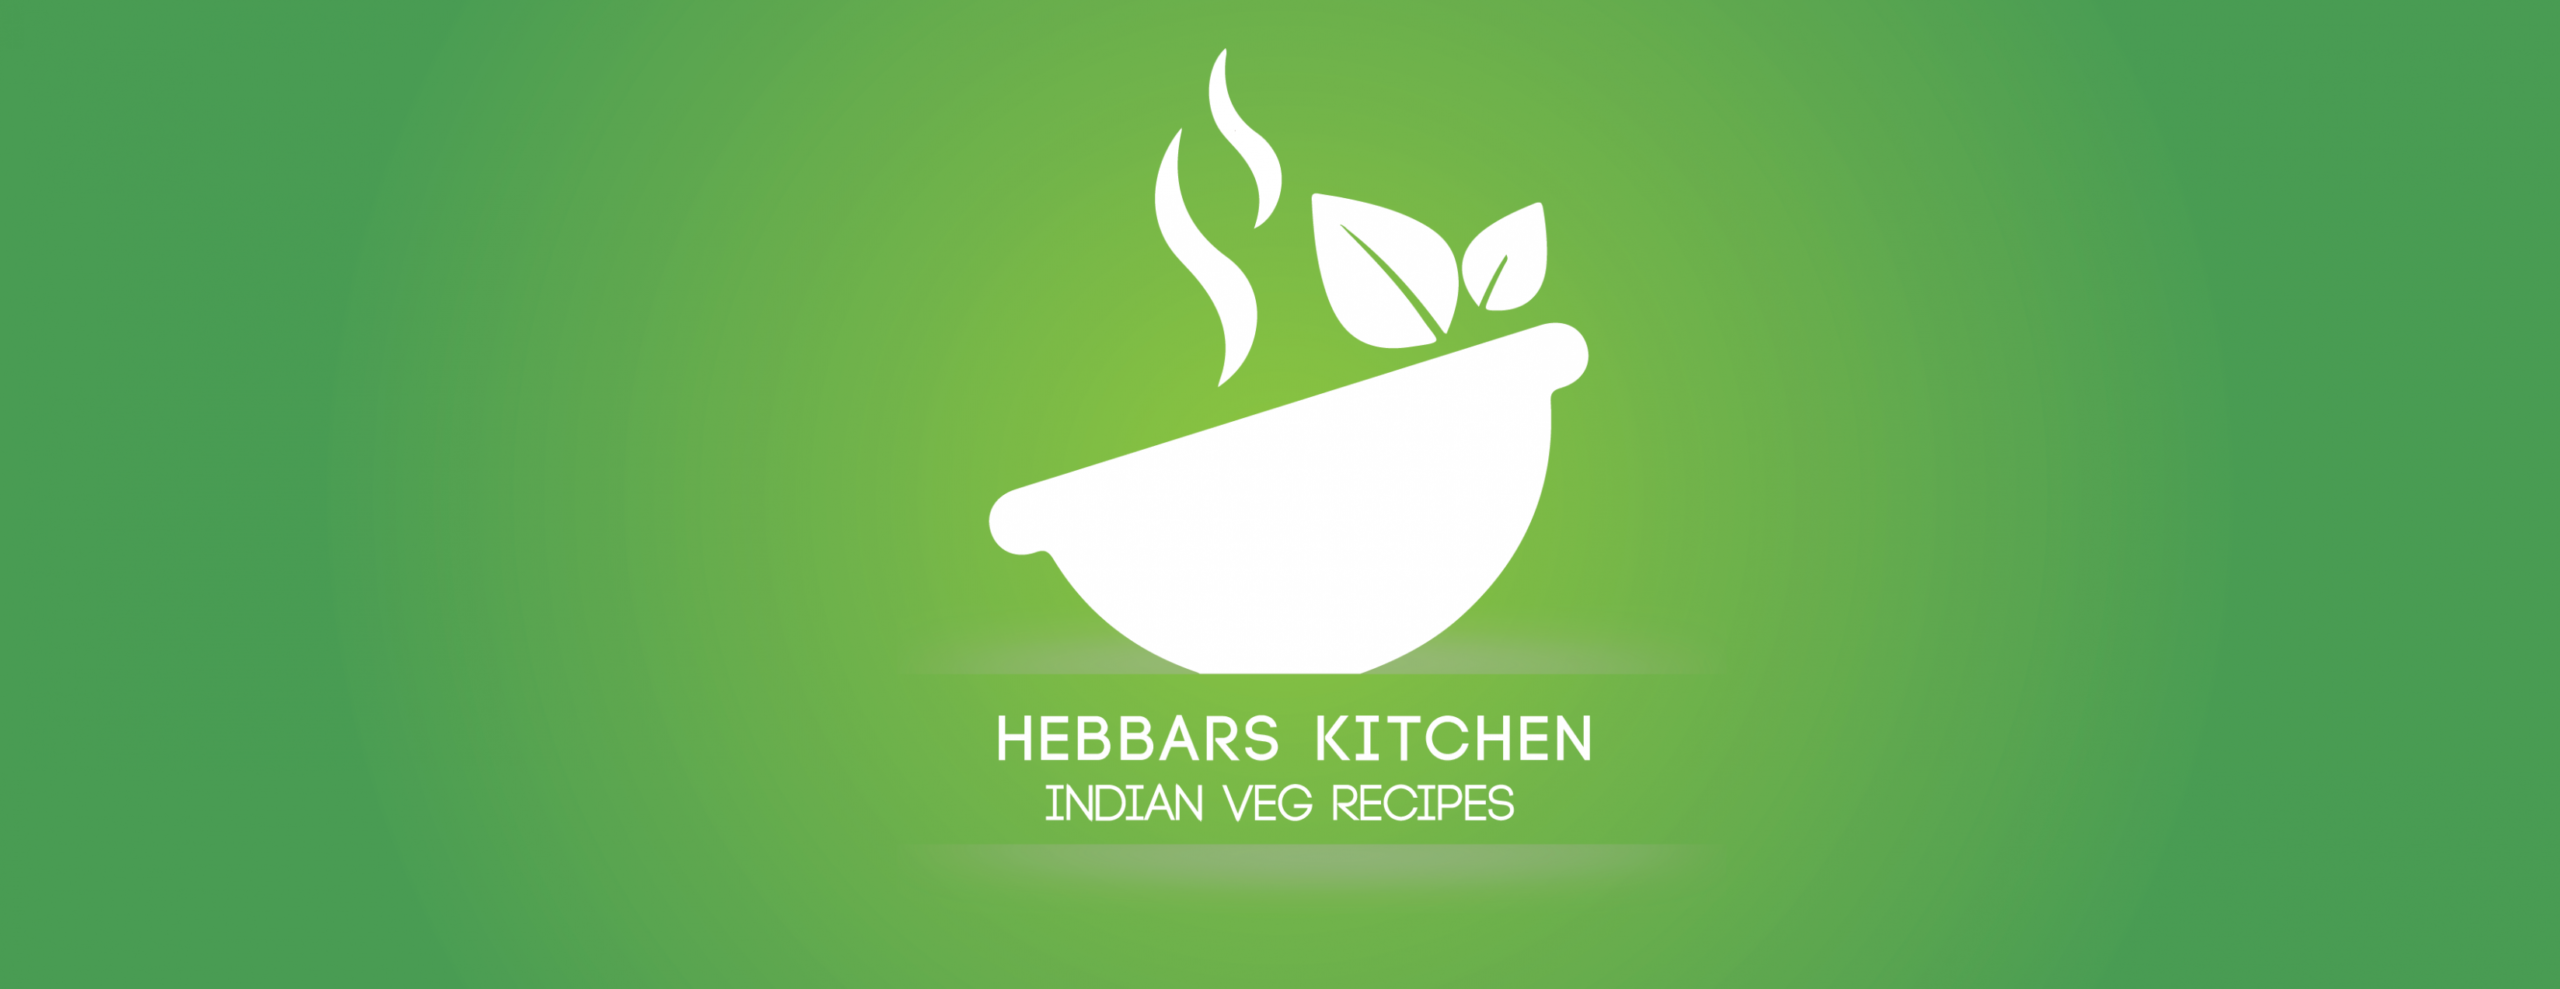 Hebbars Kitchen - Indian Veg Recipes | Vegetarian Indian ..